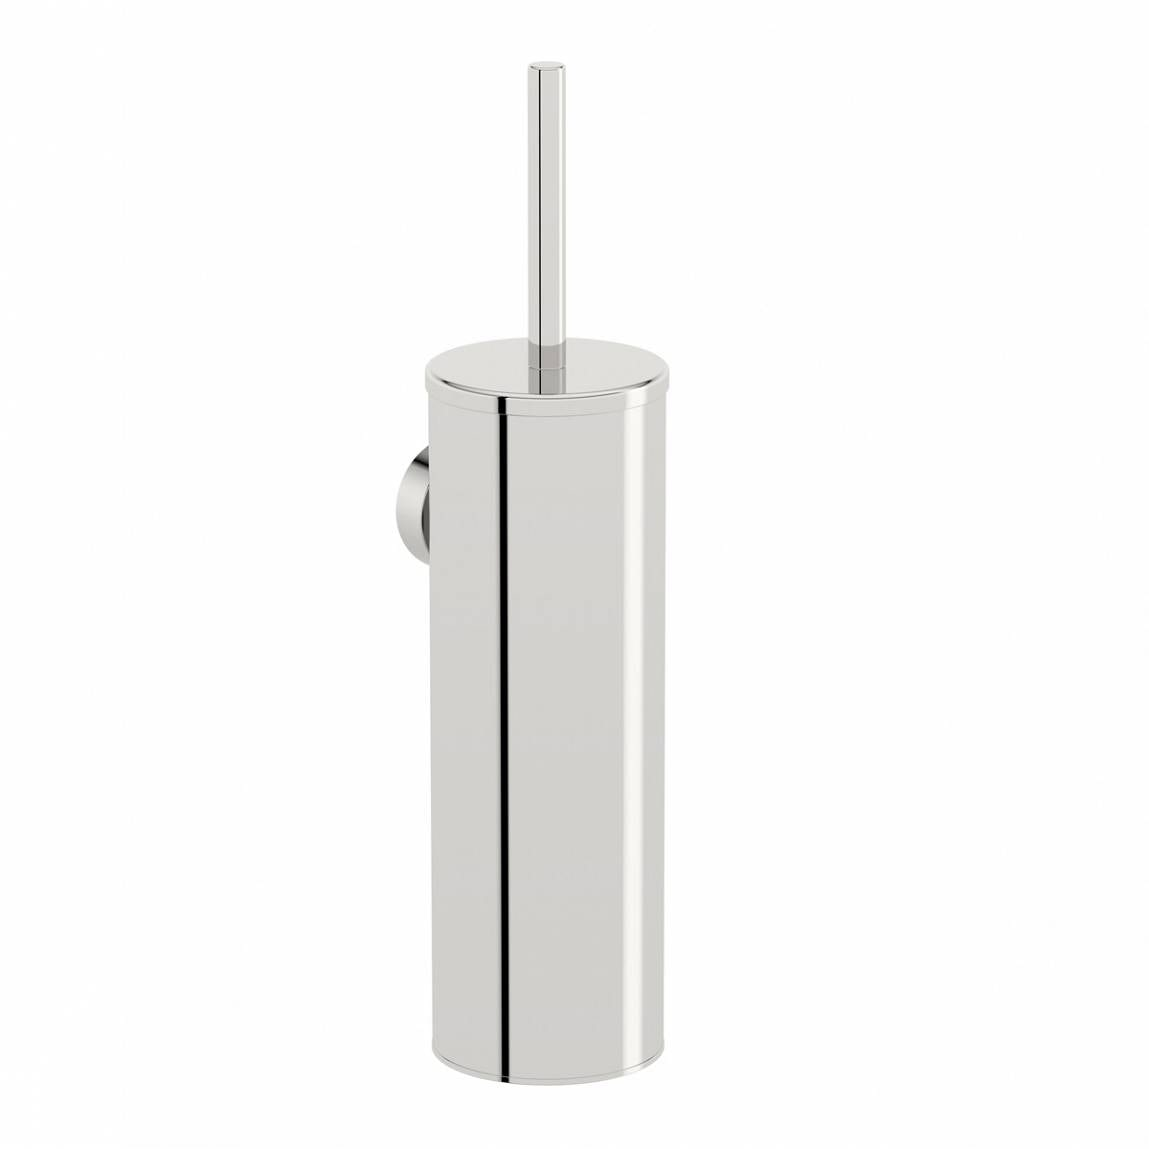 Orchard Options wall mounted stainless steel toilet brush holder